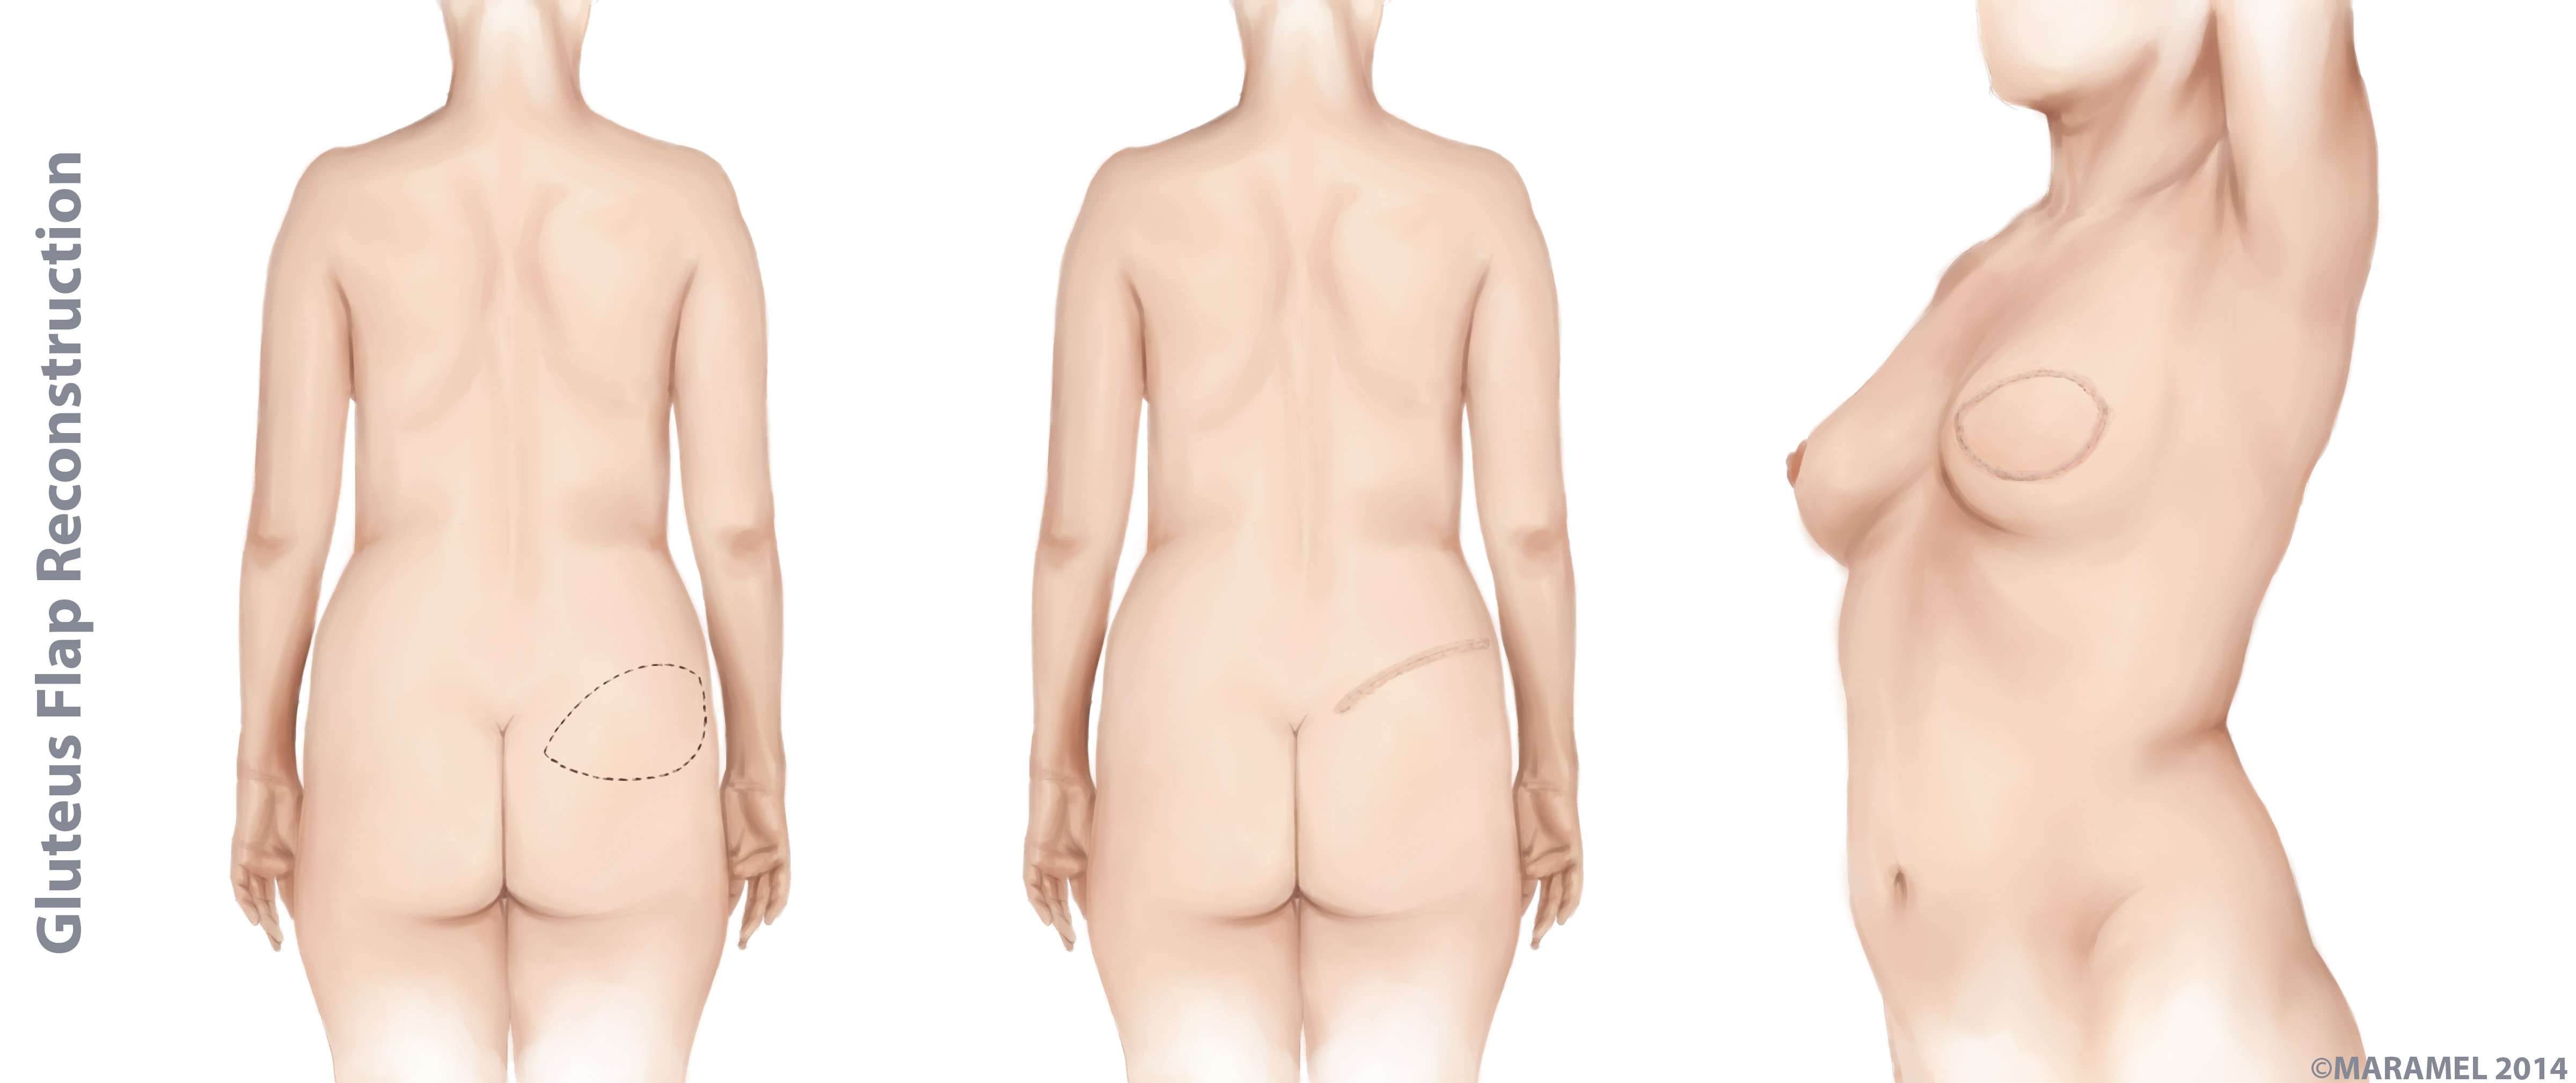 Necessary flap breast reconstruction with you